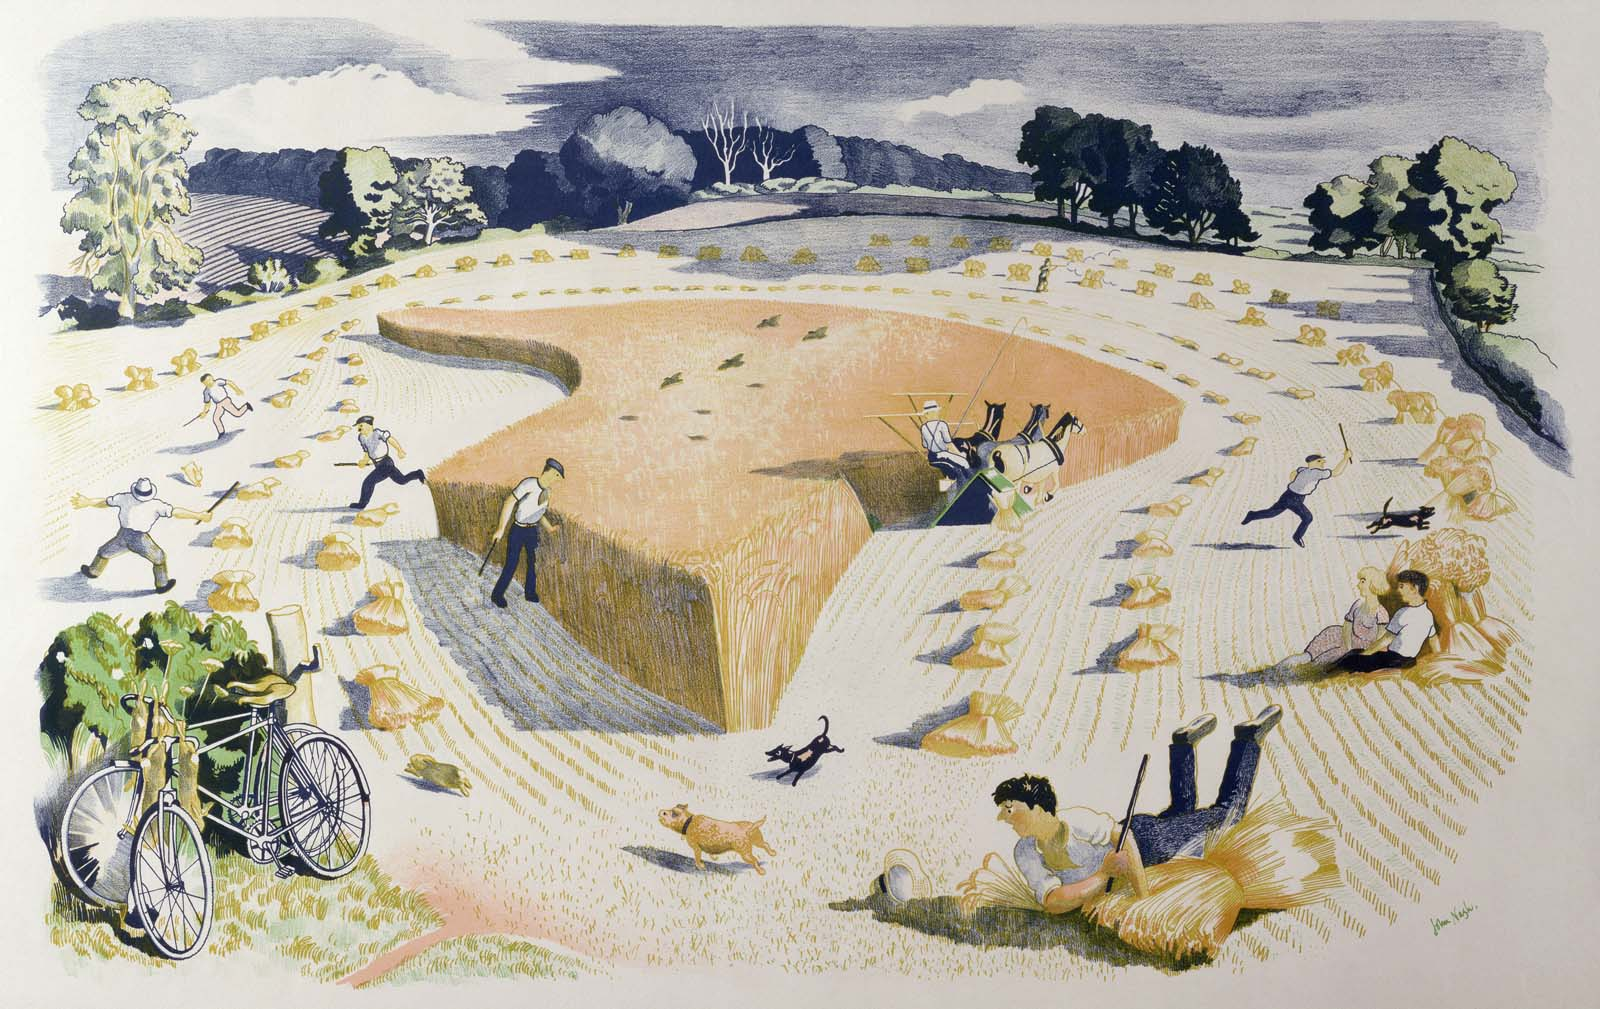 a print of showing an idealised view of a field of corn being harvested with hay ricks in piles and men with dogs chasing rabbits as a couple sit i the hay and watch